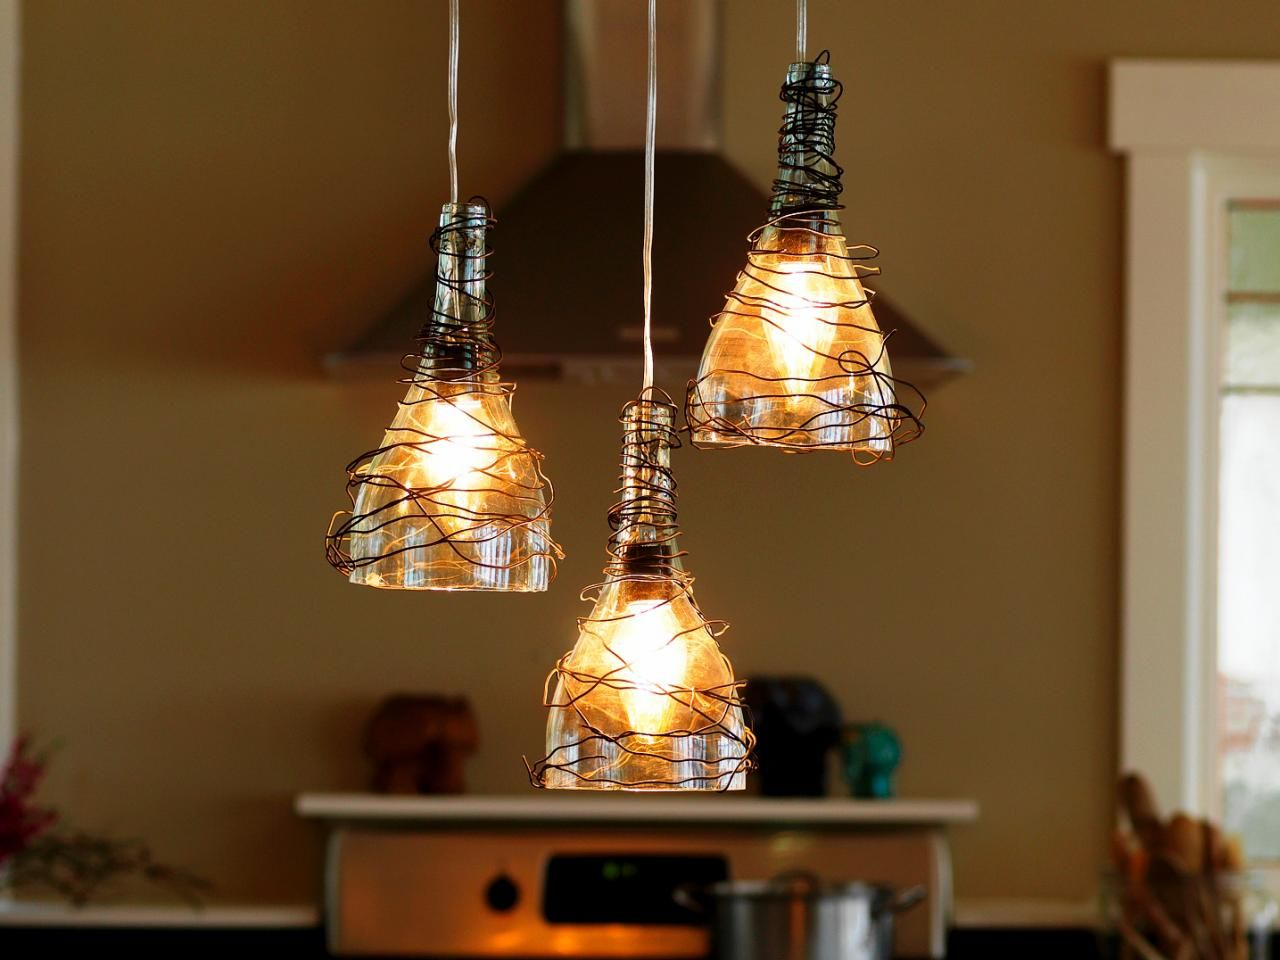 Diy chandeliers that will light up your day how to make a pendant lighting chandelier from glass bottles arubaitofo Choice Image